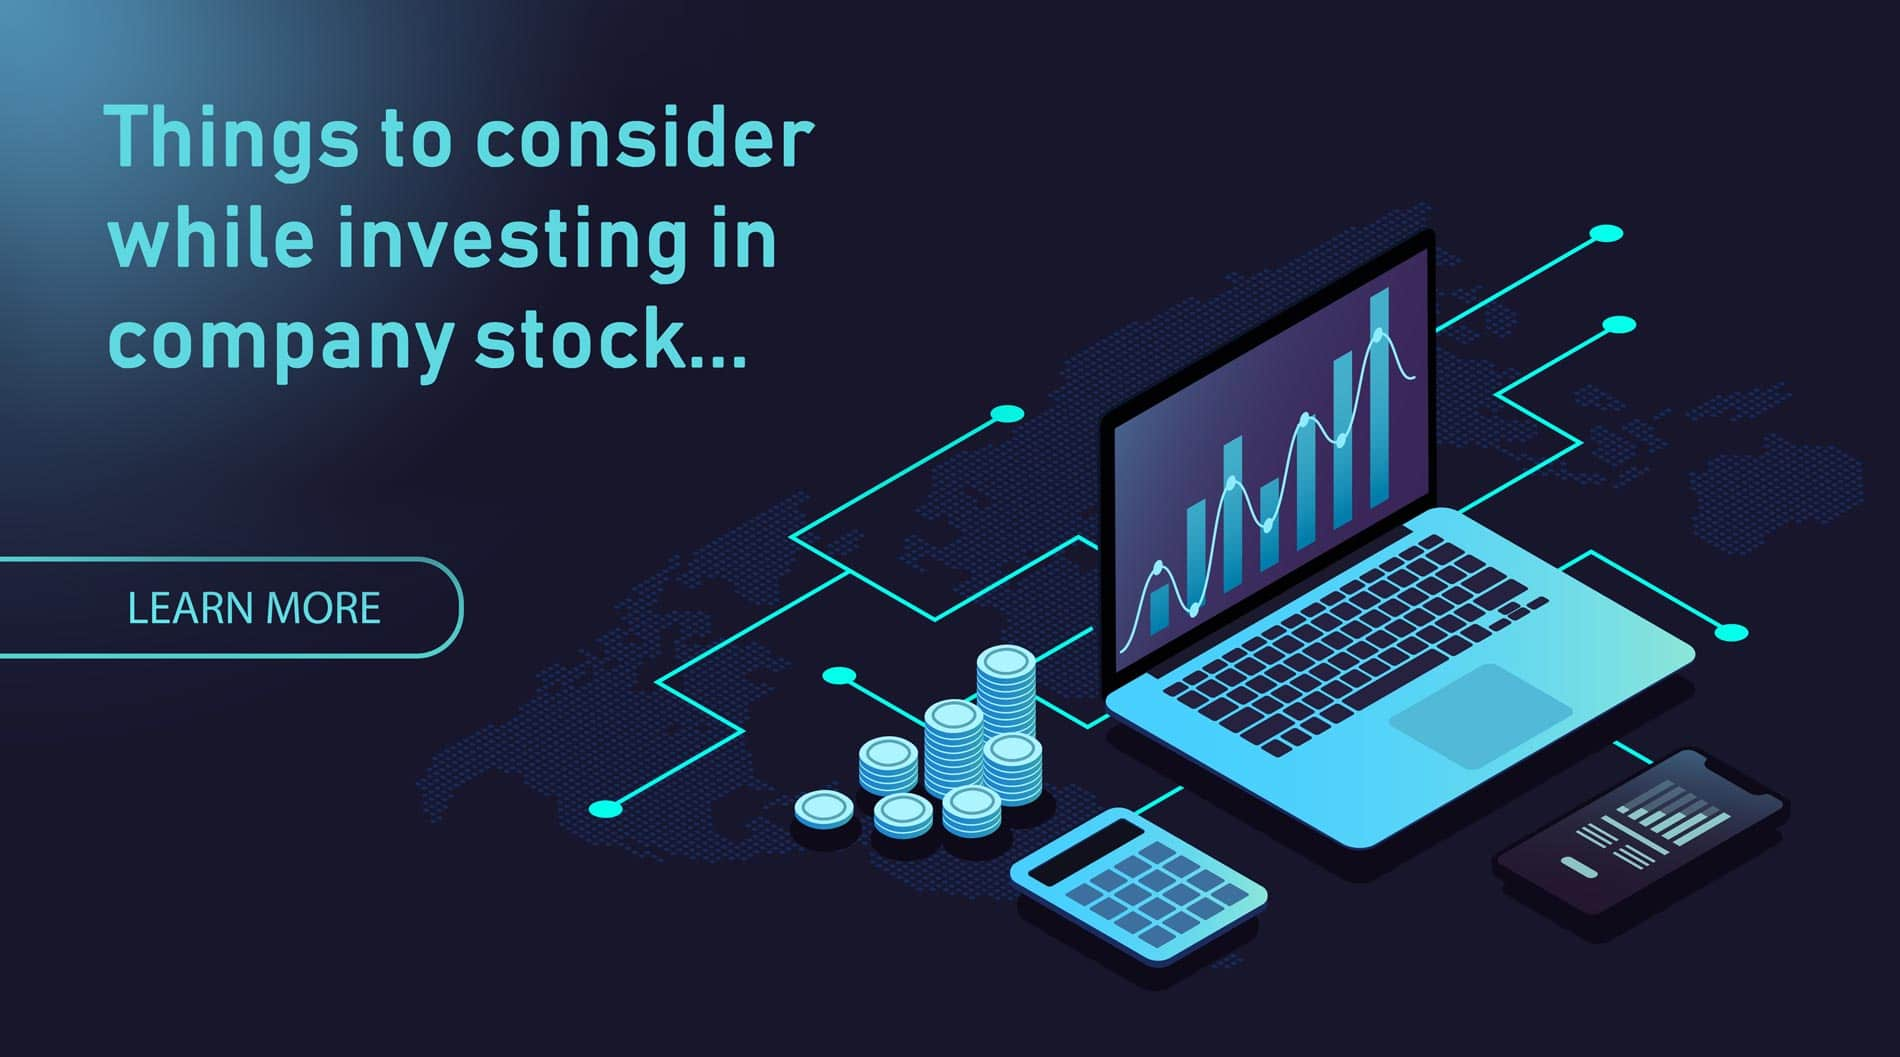 Rules to invest in company stock.